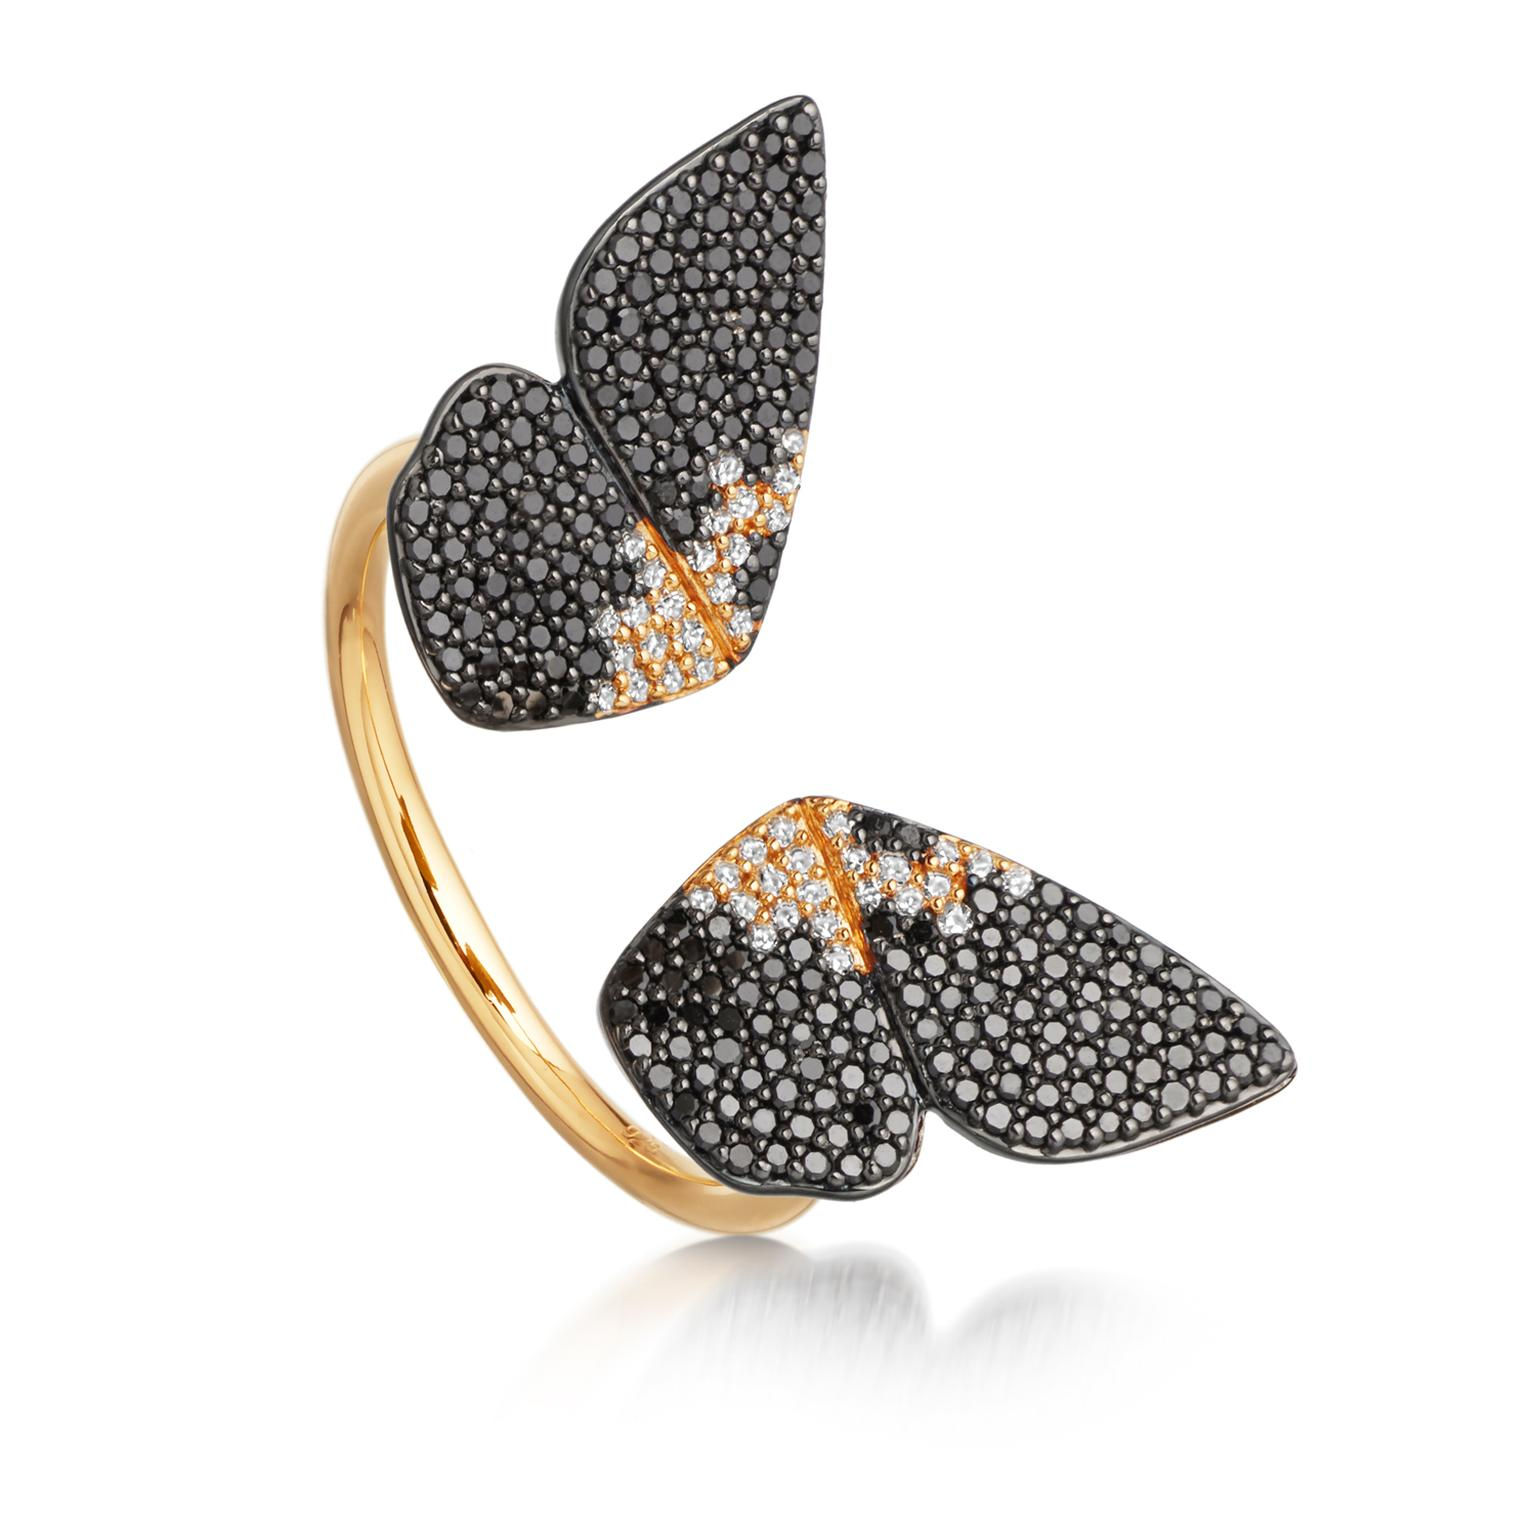 Astley Clarke Phototaxis Magpie Moth wings ring